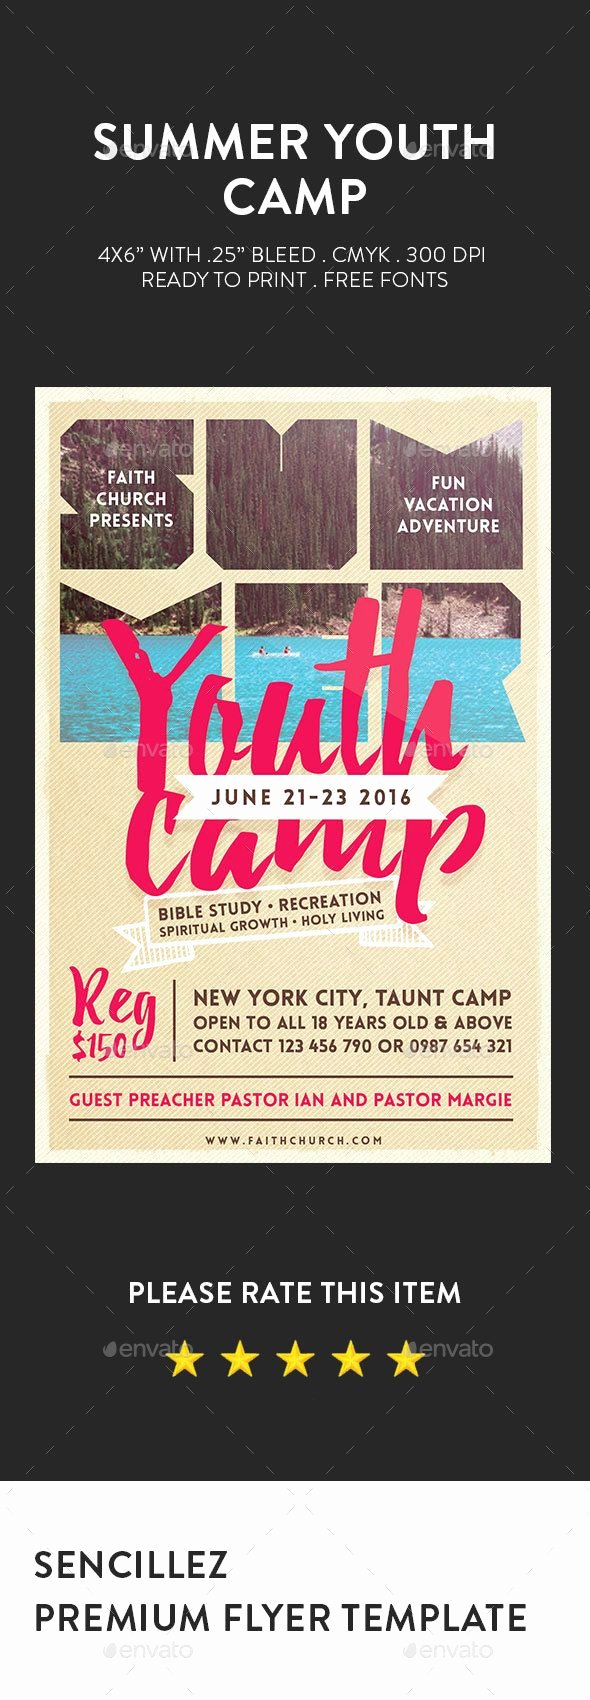 Summer Camp Lesson Plan Template Beautiful 43 Best Images About Scripture On Pinterest